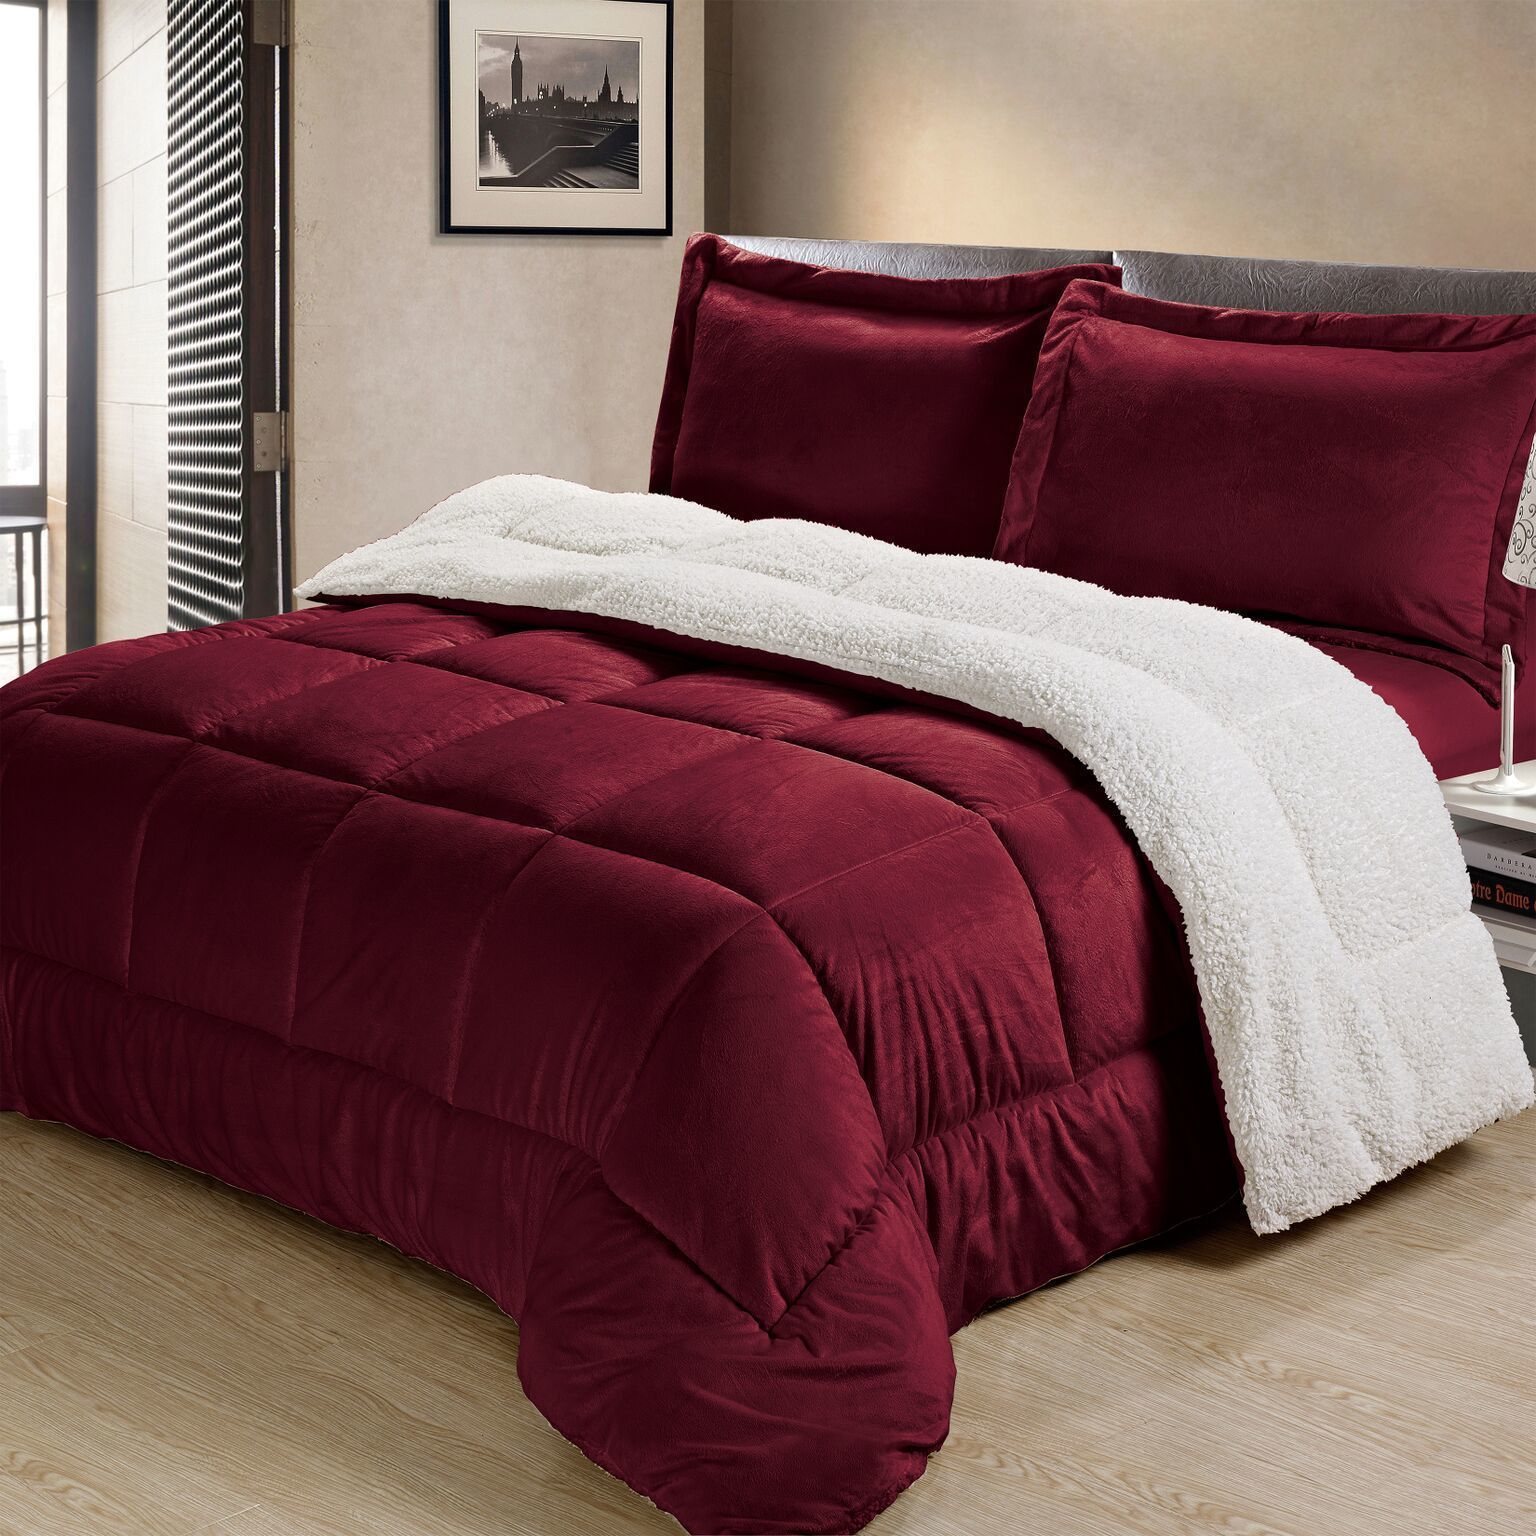 Where To Buy Bedding Sets Online Comforter Sets Comforters Red